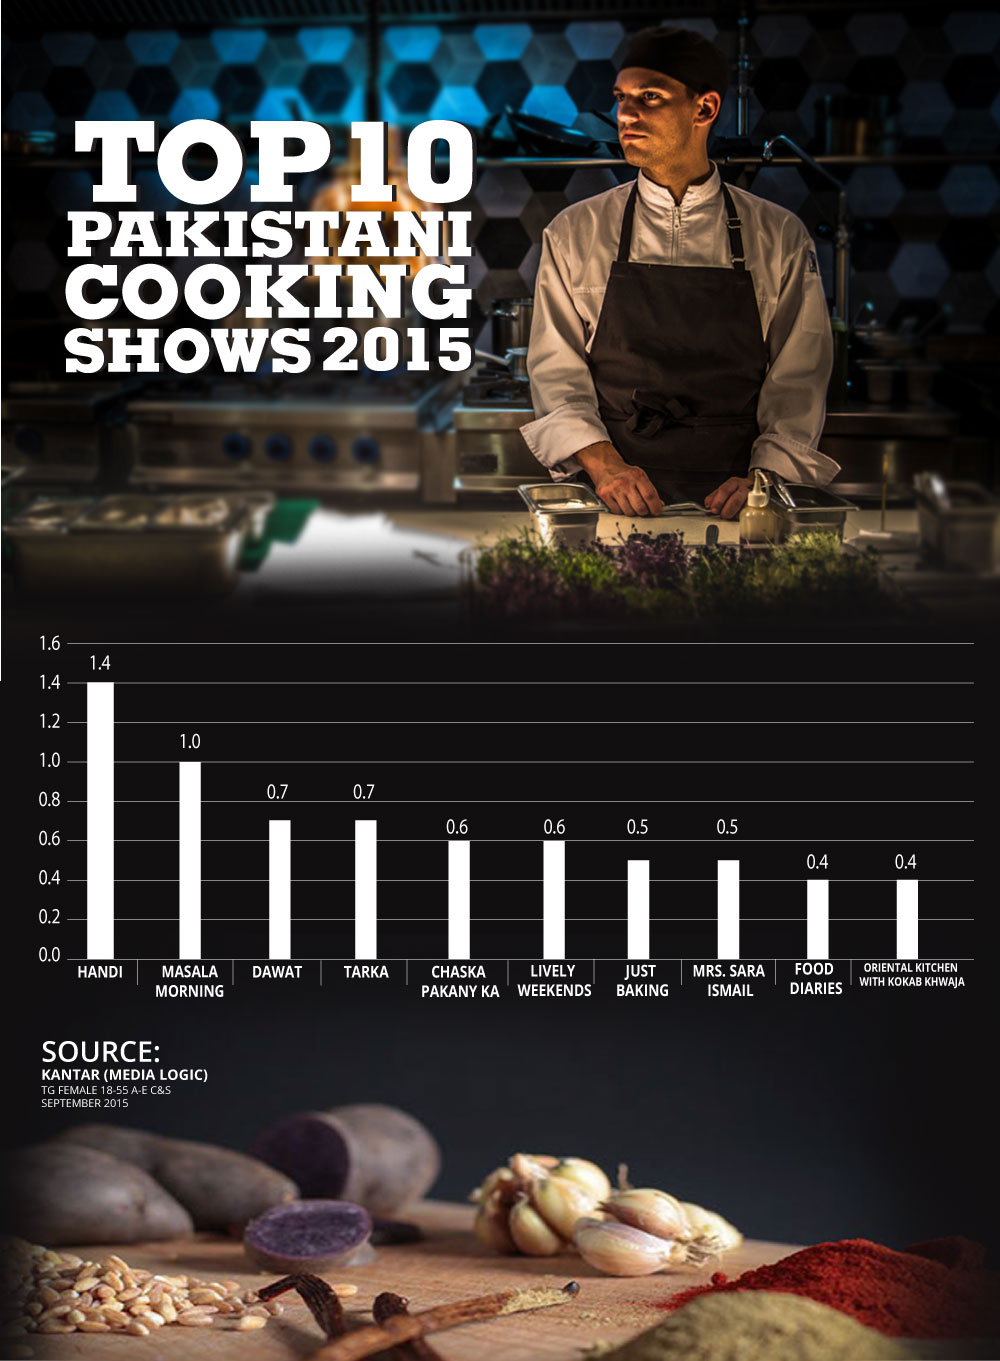 Top Cooking Shows in Pakistan